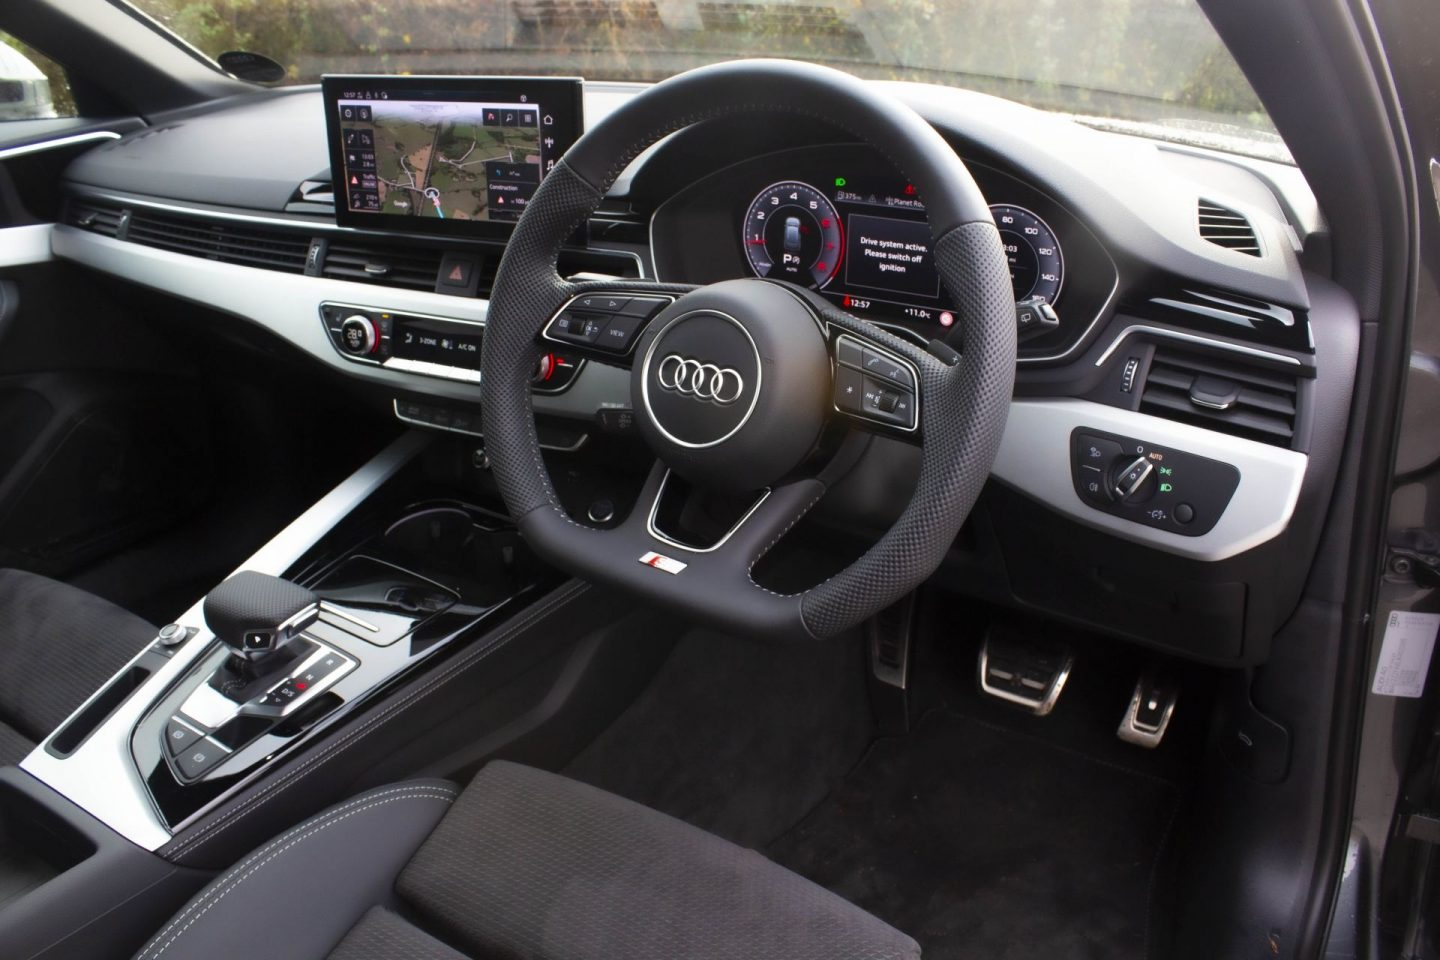 Audi virtual cockpit, Audi, Audi interior, Dadbloguk